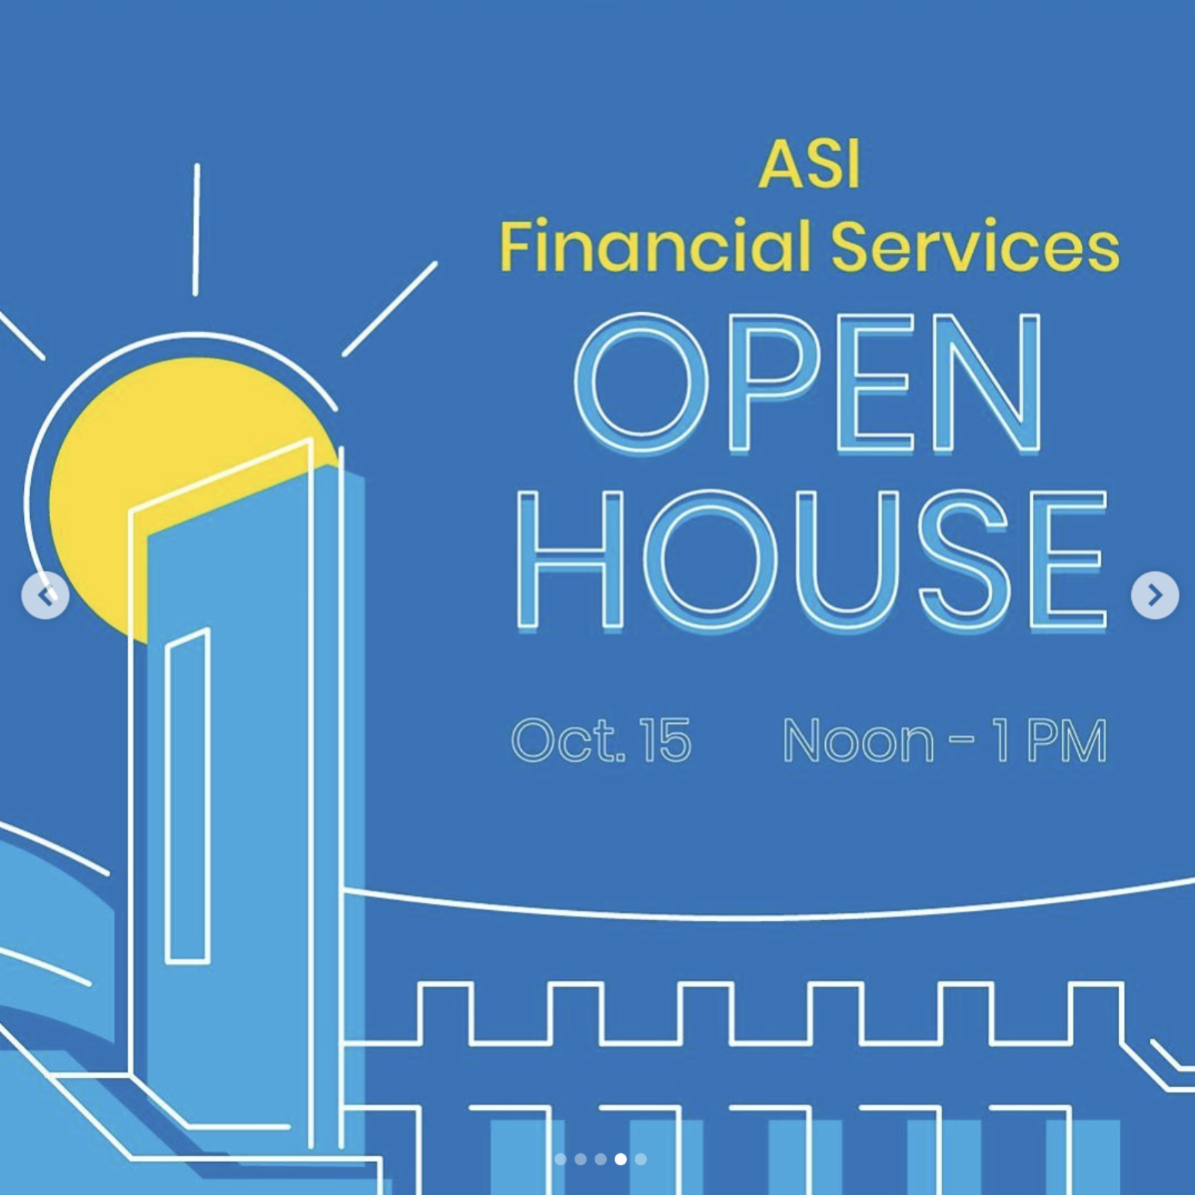 asi financial services open house on oct 15